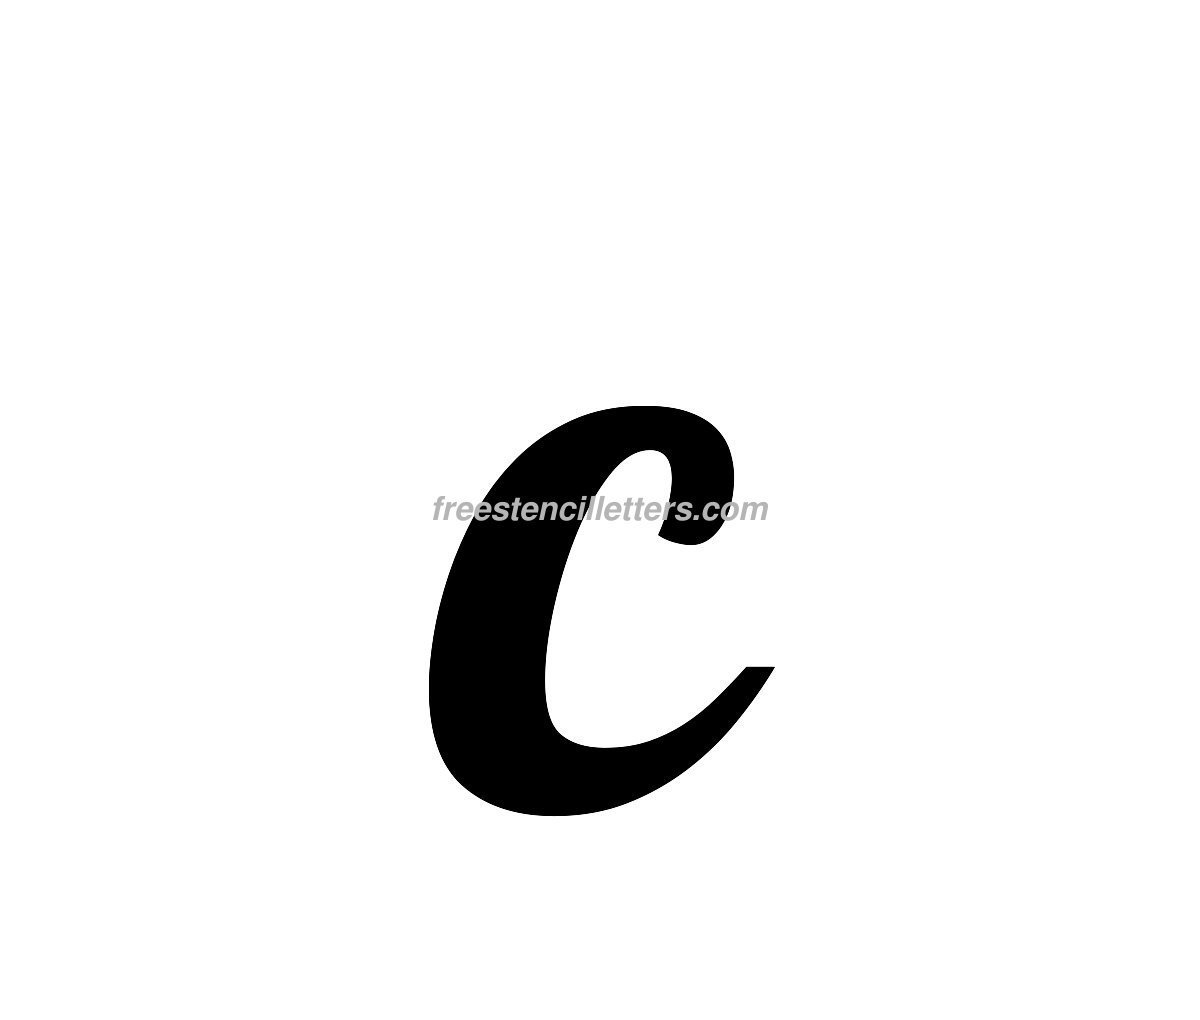 small-c Letter Stencil Templates K on coloring pages, free printable cut out, cut out, fancy printable, print out, lower case, free printable 5 inches, fancy capital,